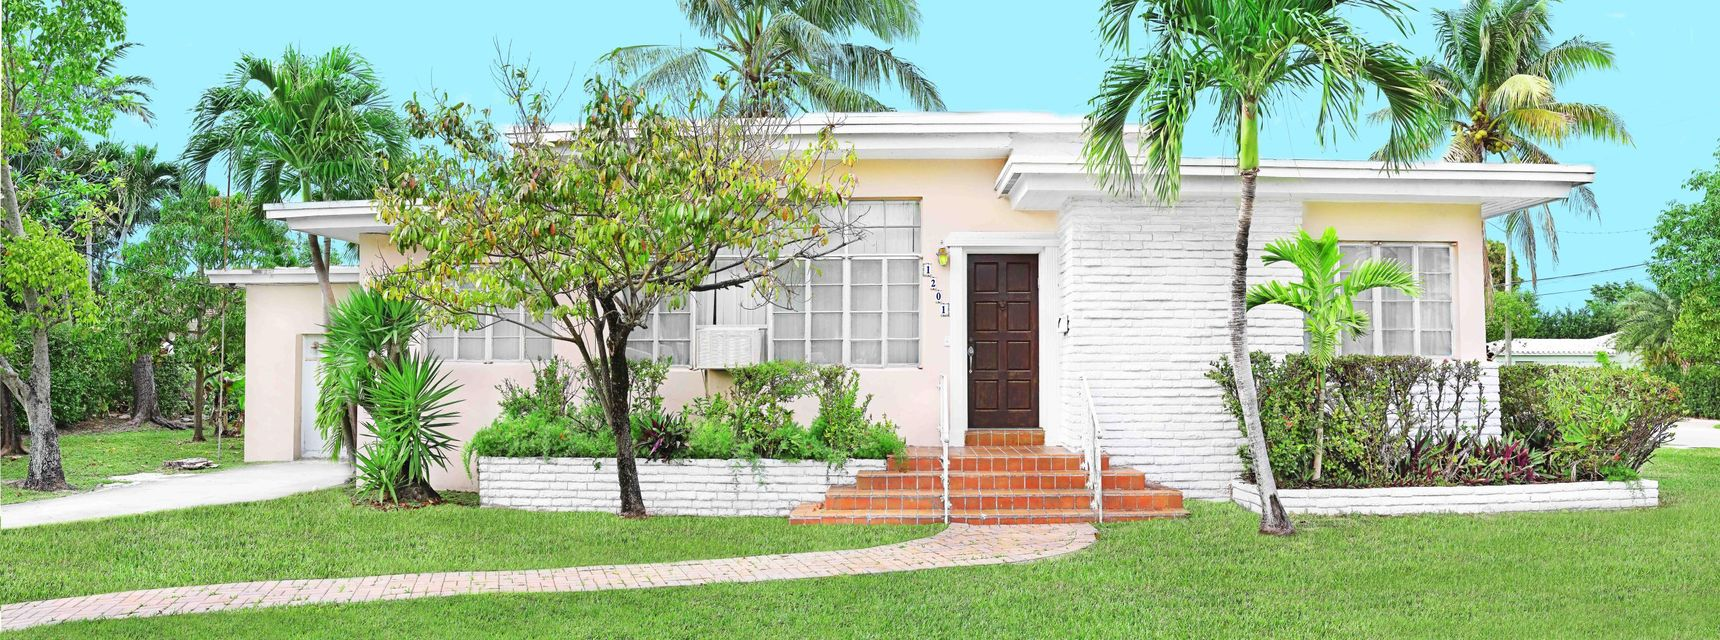 Additional photo for property listing at 1201 S Biscayne Point Road  Miami Beach, Florida 33141 Vereinigte Staaten